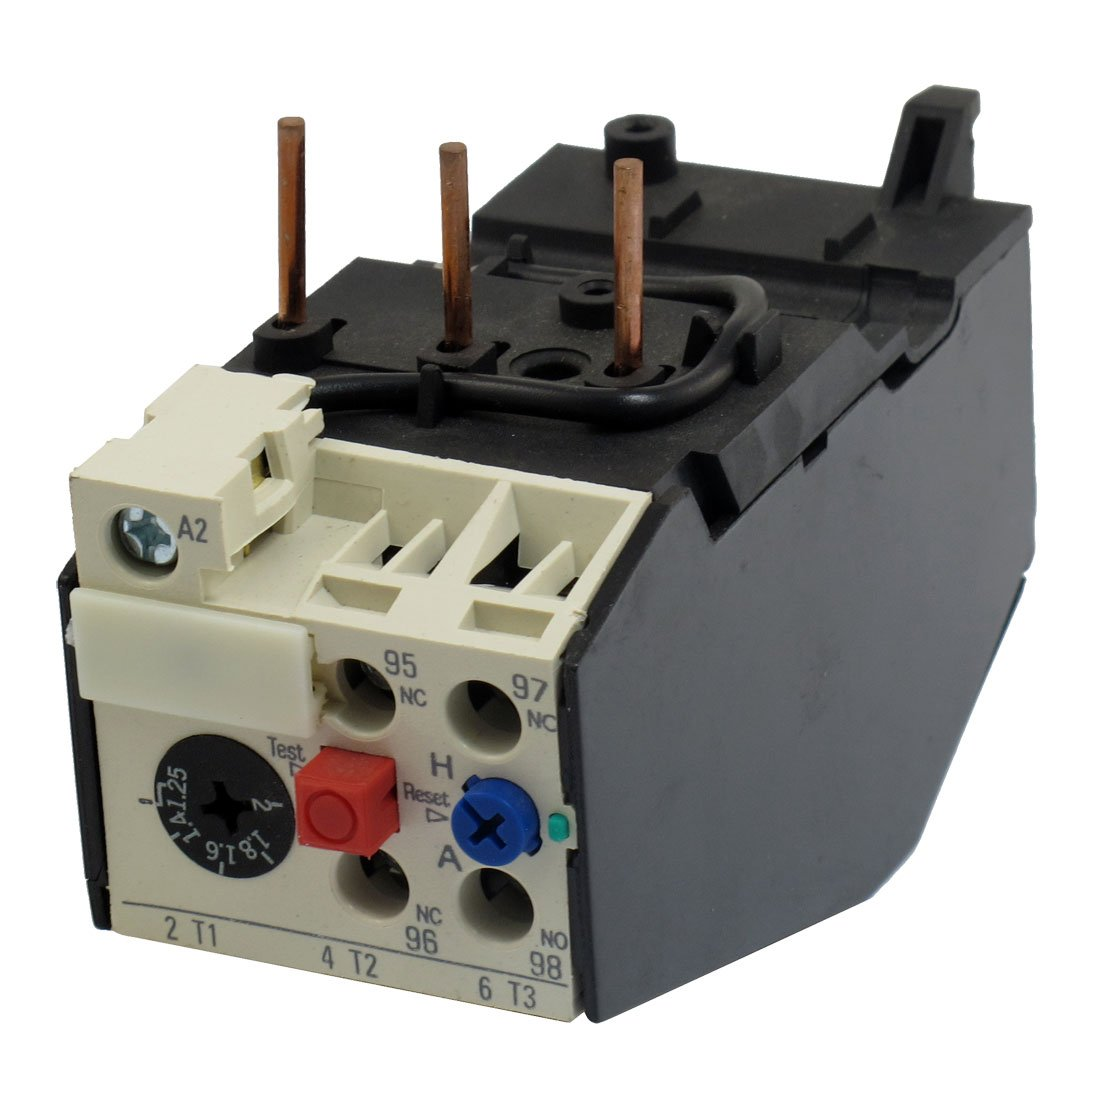 uxcell JRS2-25 2A 3 Pole 1.25-2A Current Range Motor Thermal Overload Relays